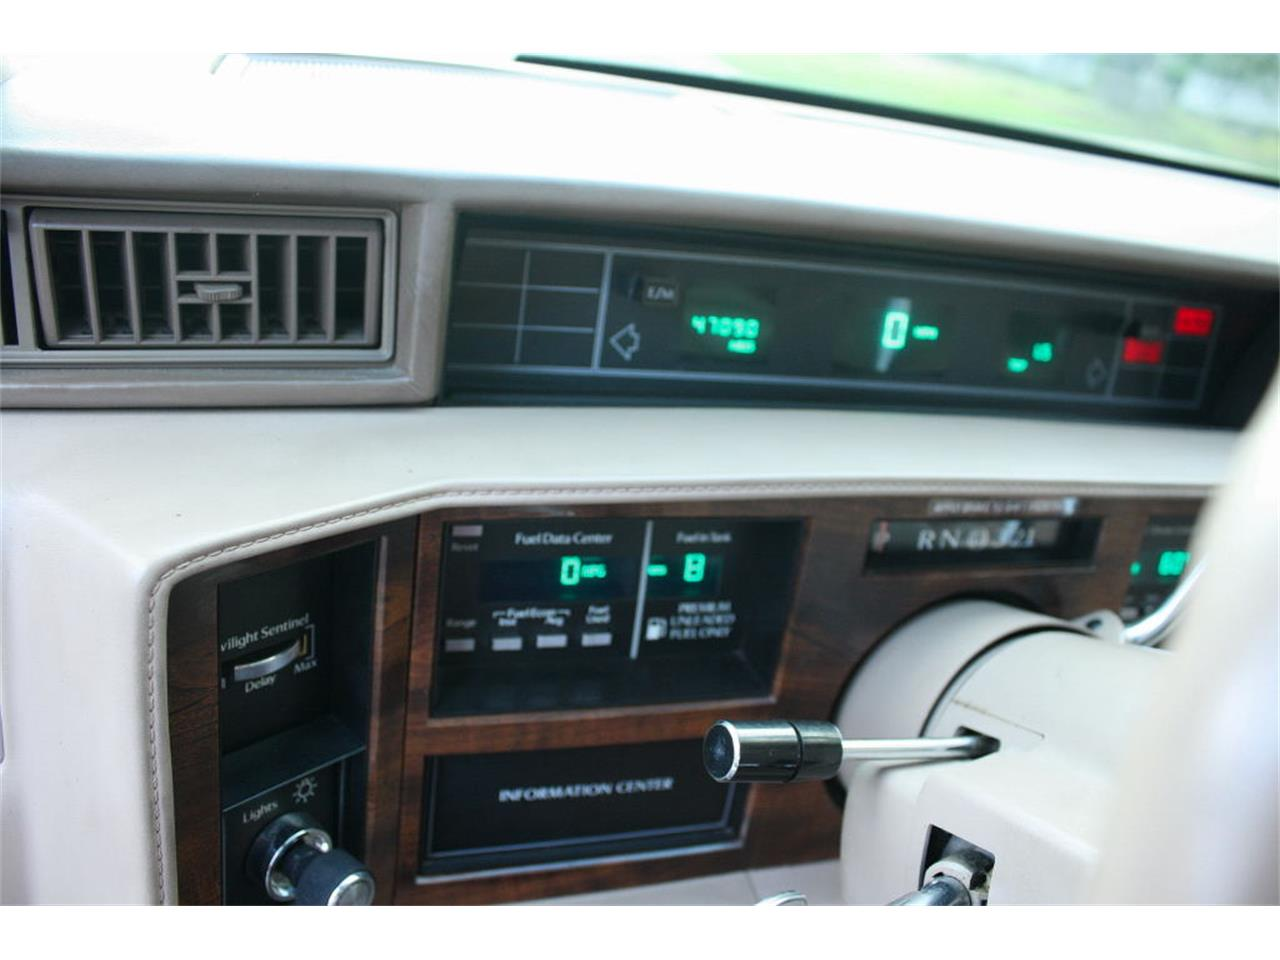 Large Picture of 1991 Cadillac Sedan - $9,500.00 Offered by MJC Classic Cars - L5XM